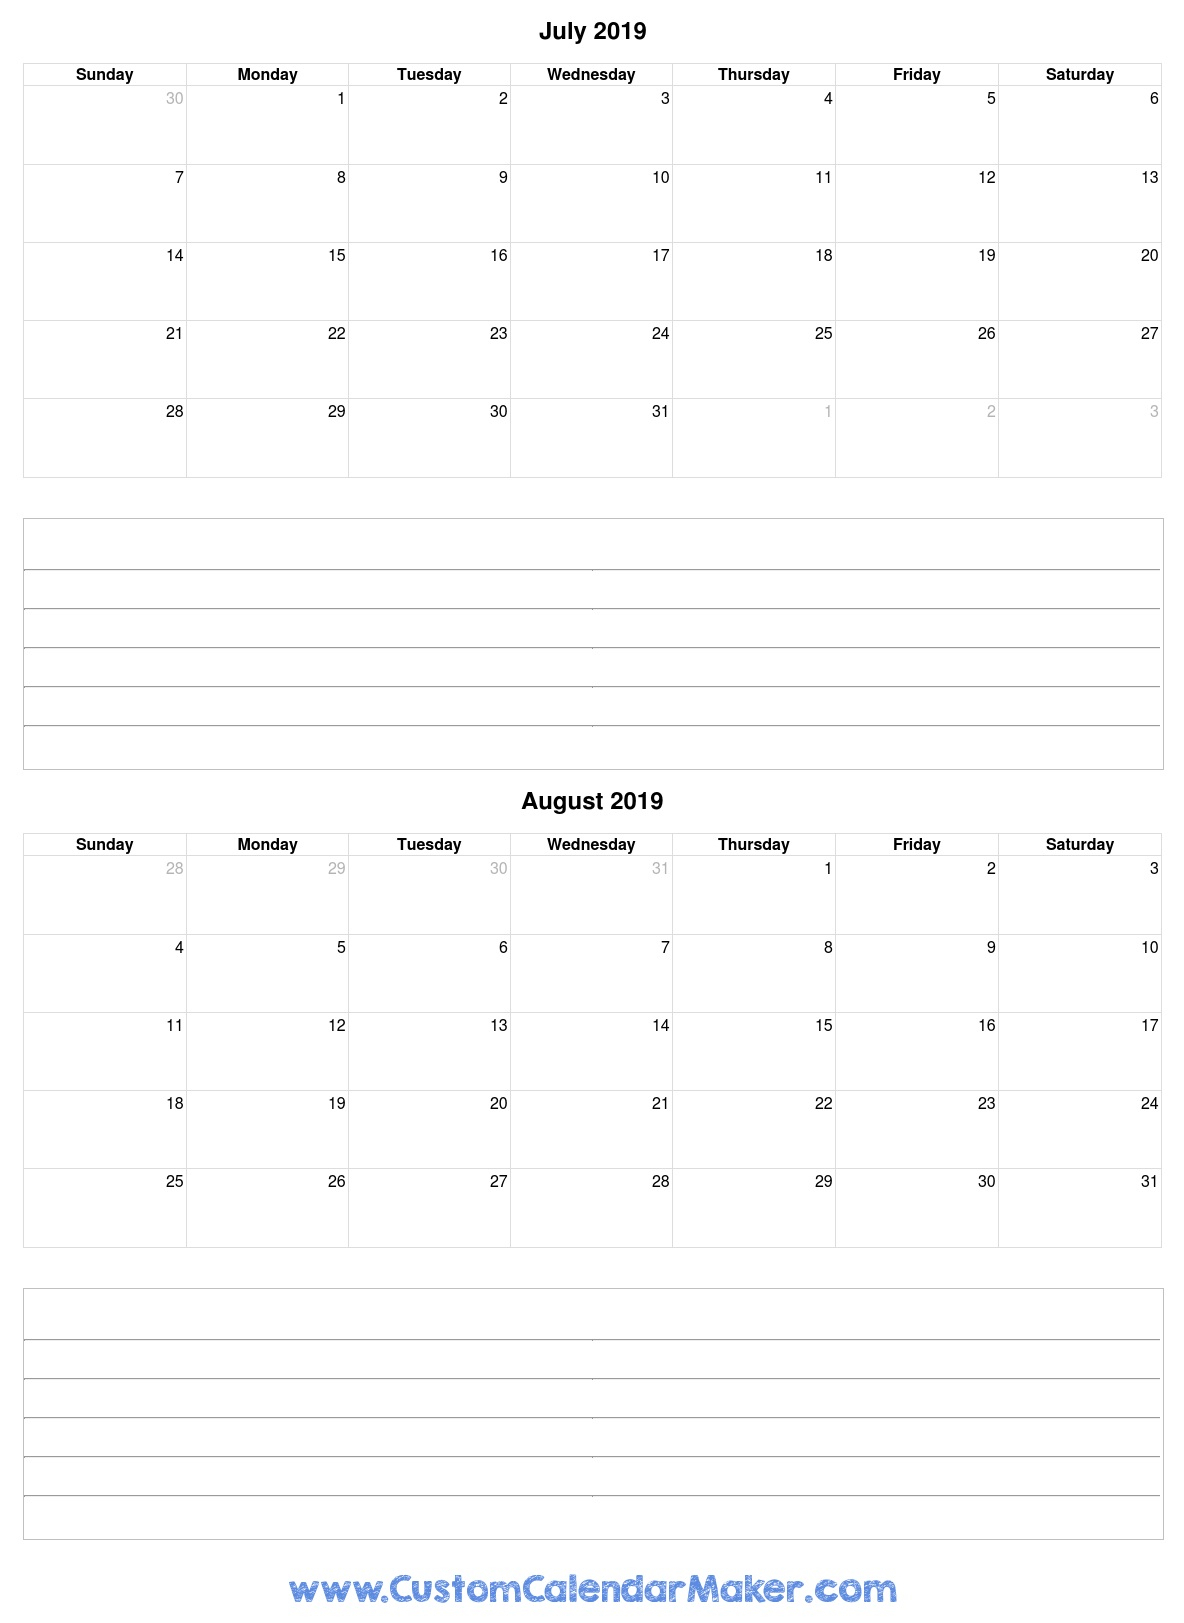 July To August 2019 Calendar Template With Notes in August Calendar Template With Notes